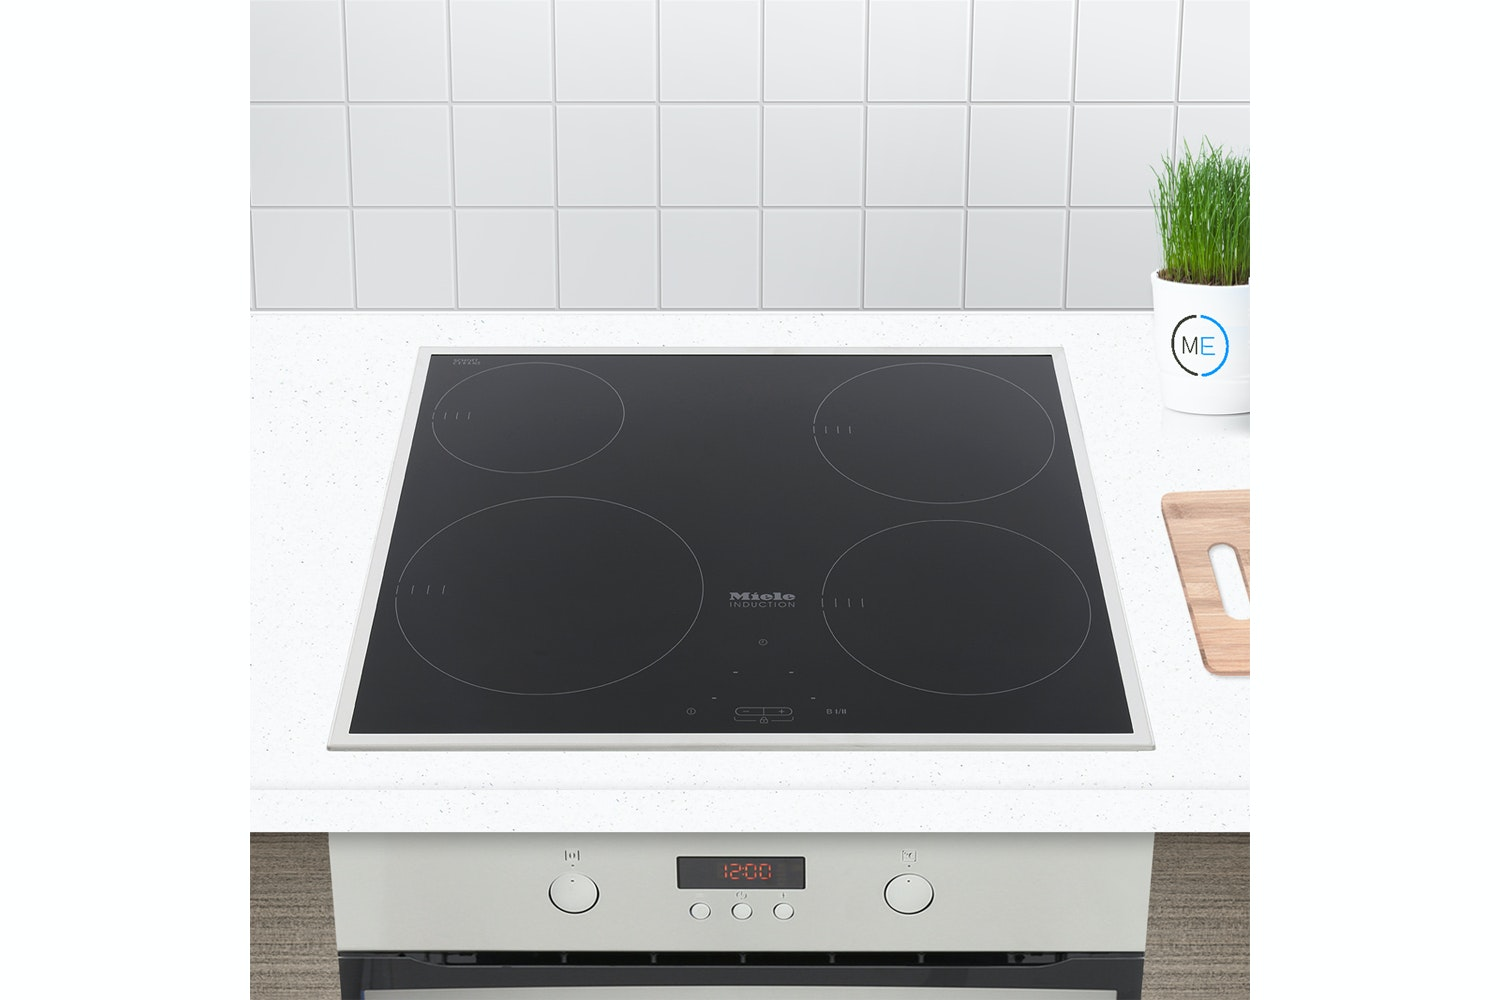 Miele KM 6115  Induction hob   with onset controls with 4 cooking zones for maximum convenience at an attractive entry level price